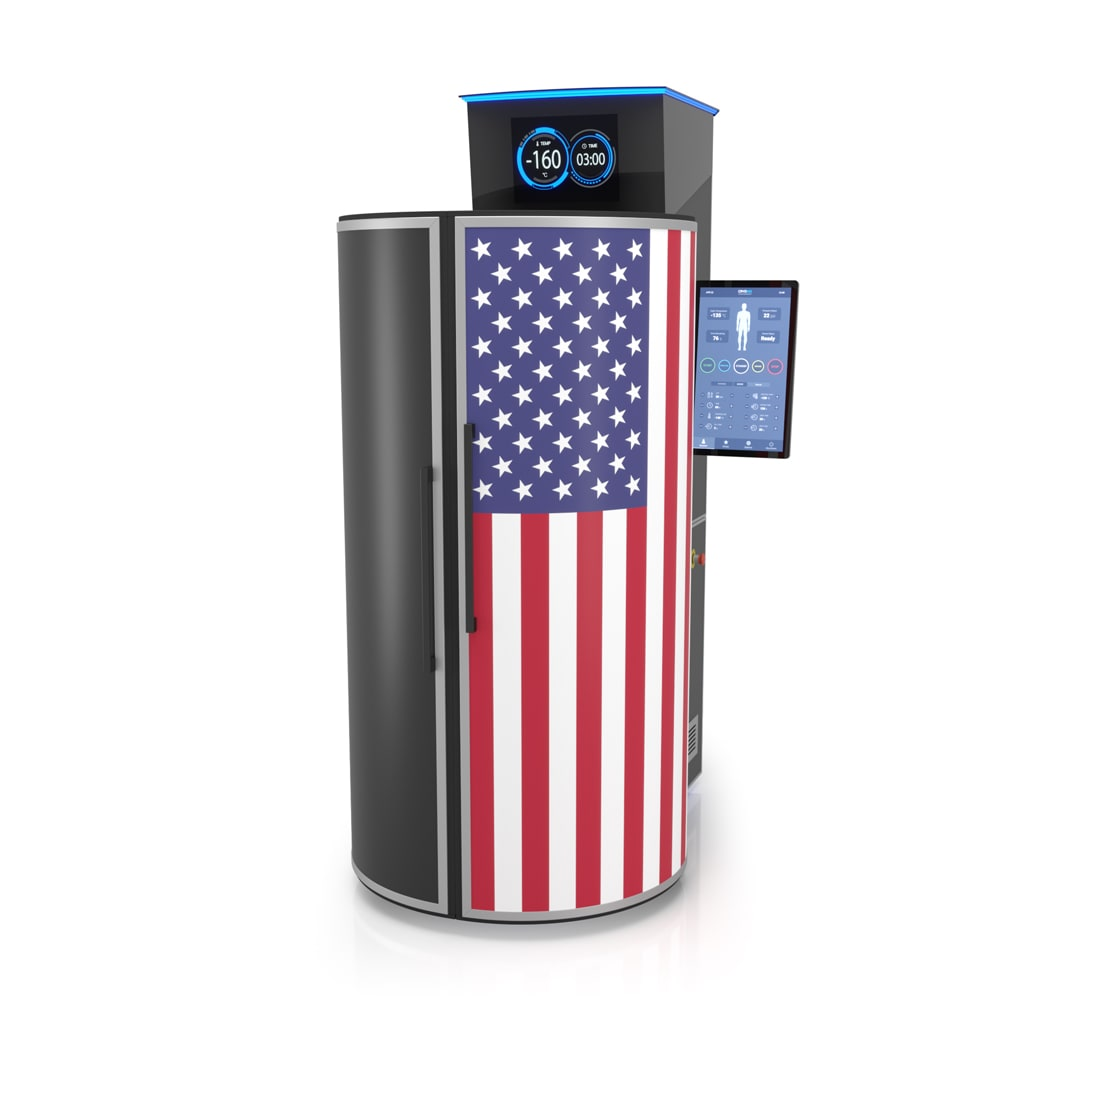 CRYO XC™ cryotherapy unit exterior customized in USA flag